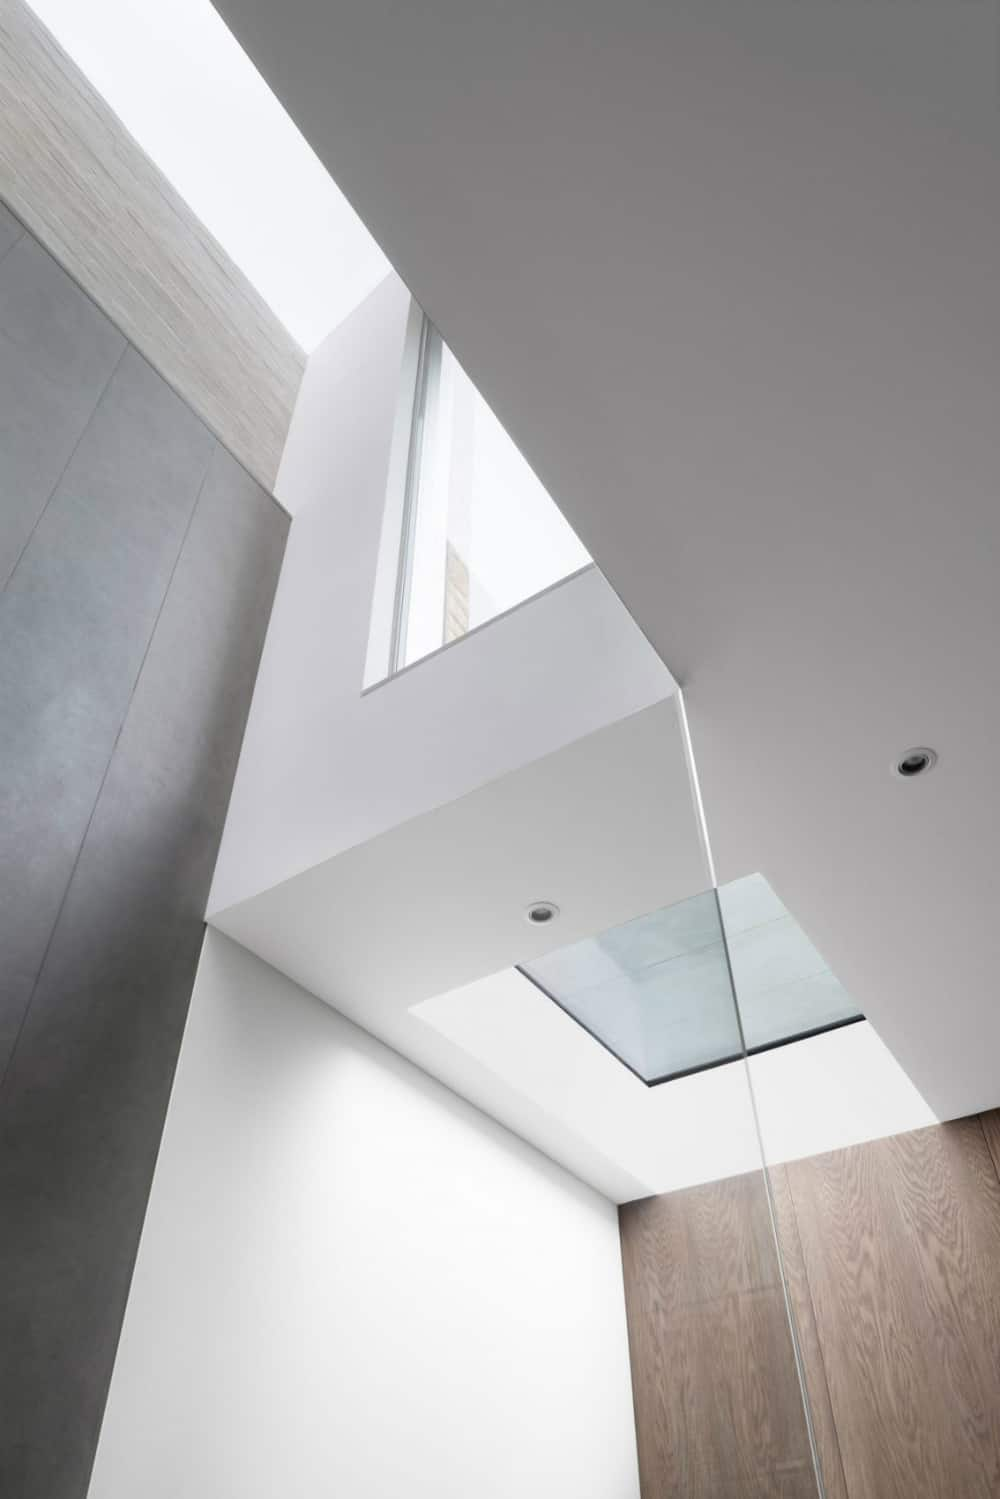 Skylights allow the light to travel through multiple levels